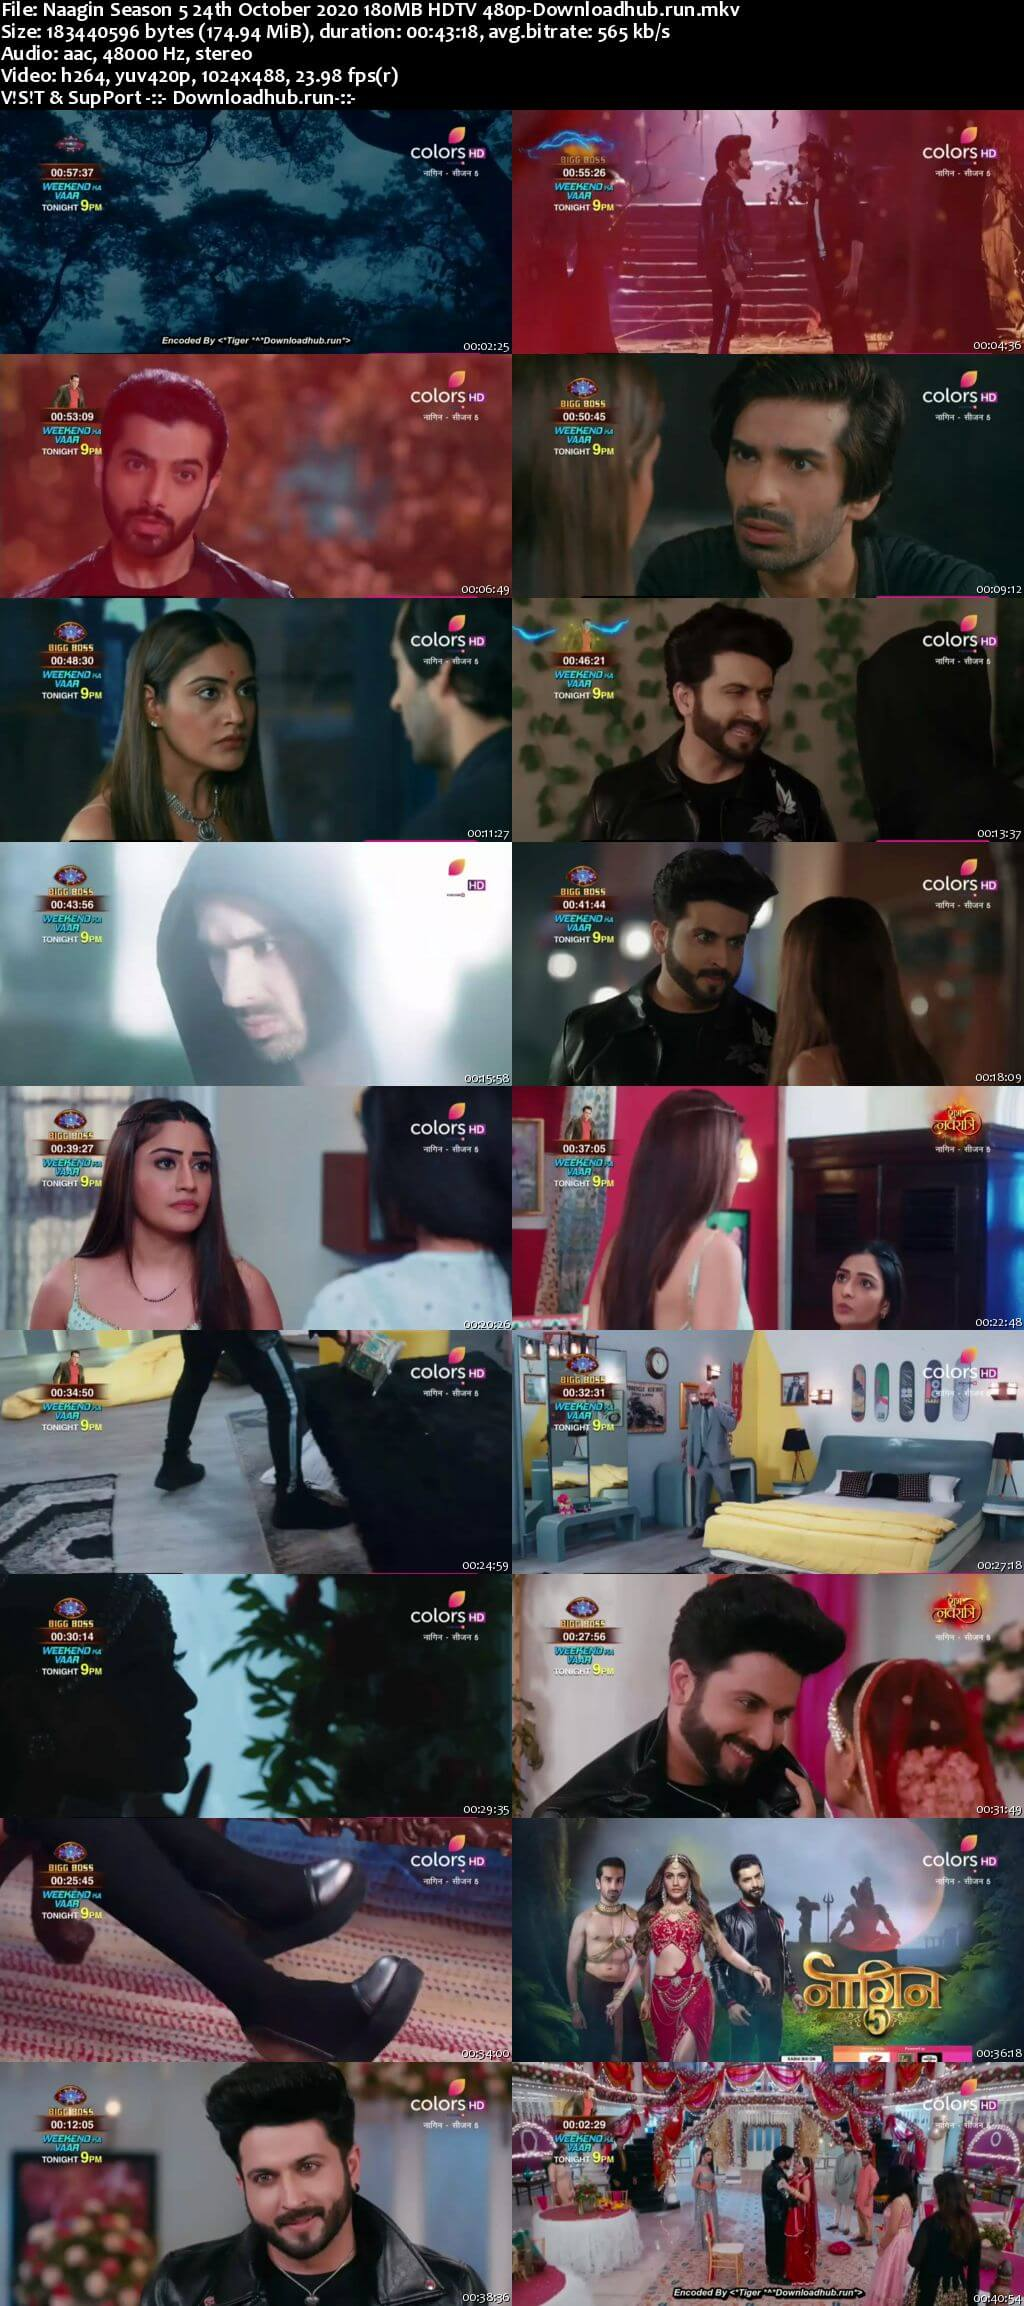 Naagin Season 5 24th October 2020 180MB HDTV 480p